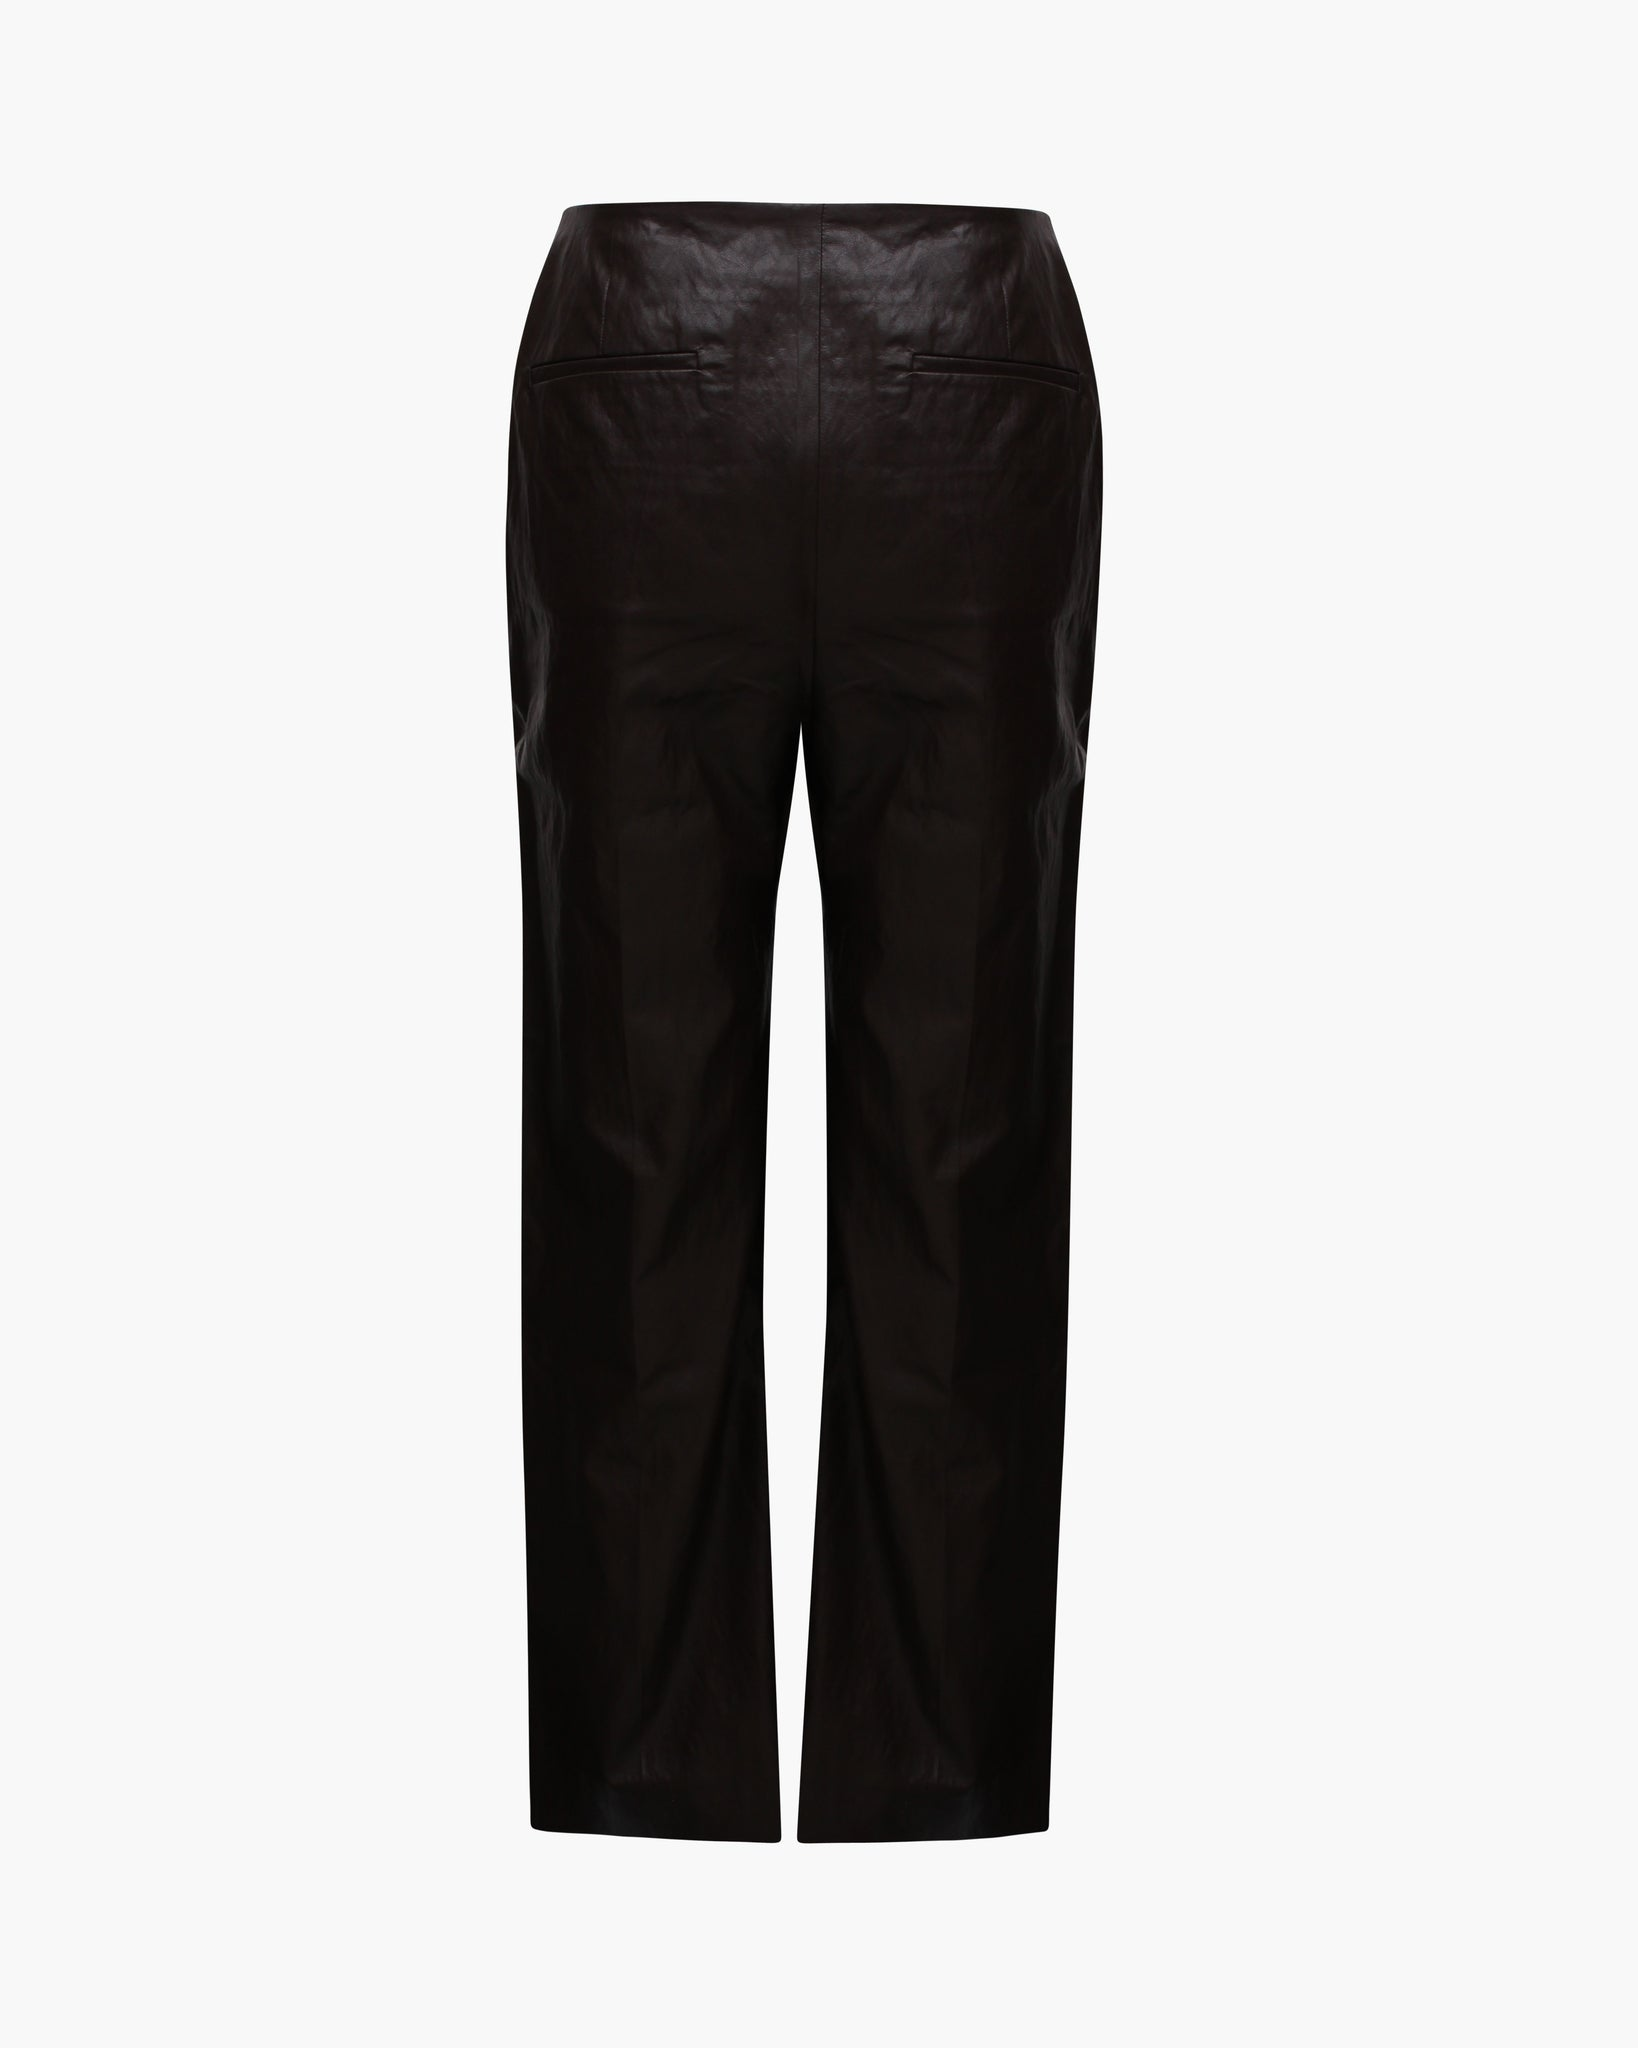 Lexi Trousers Faux Leather Brown